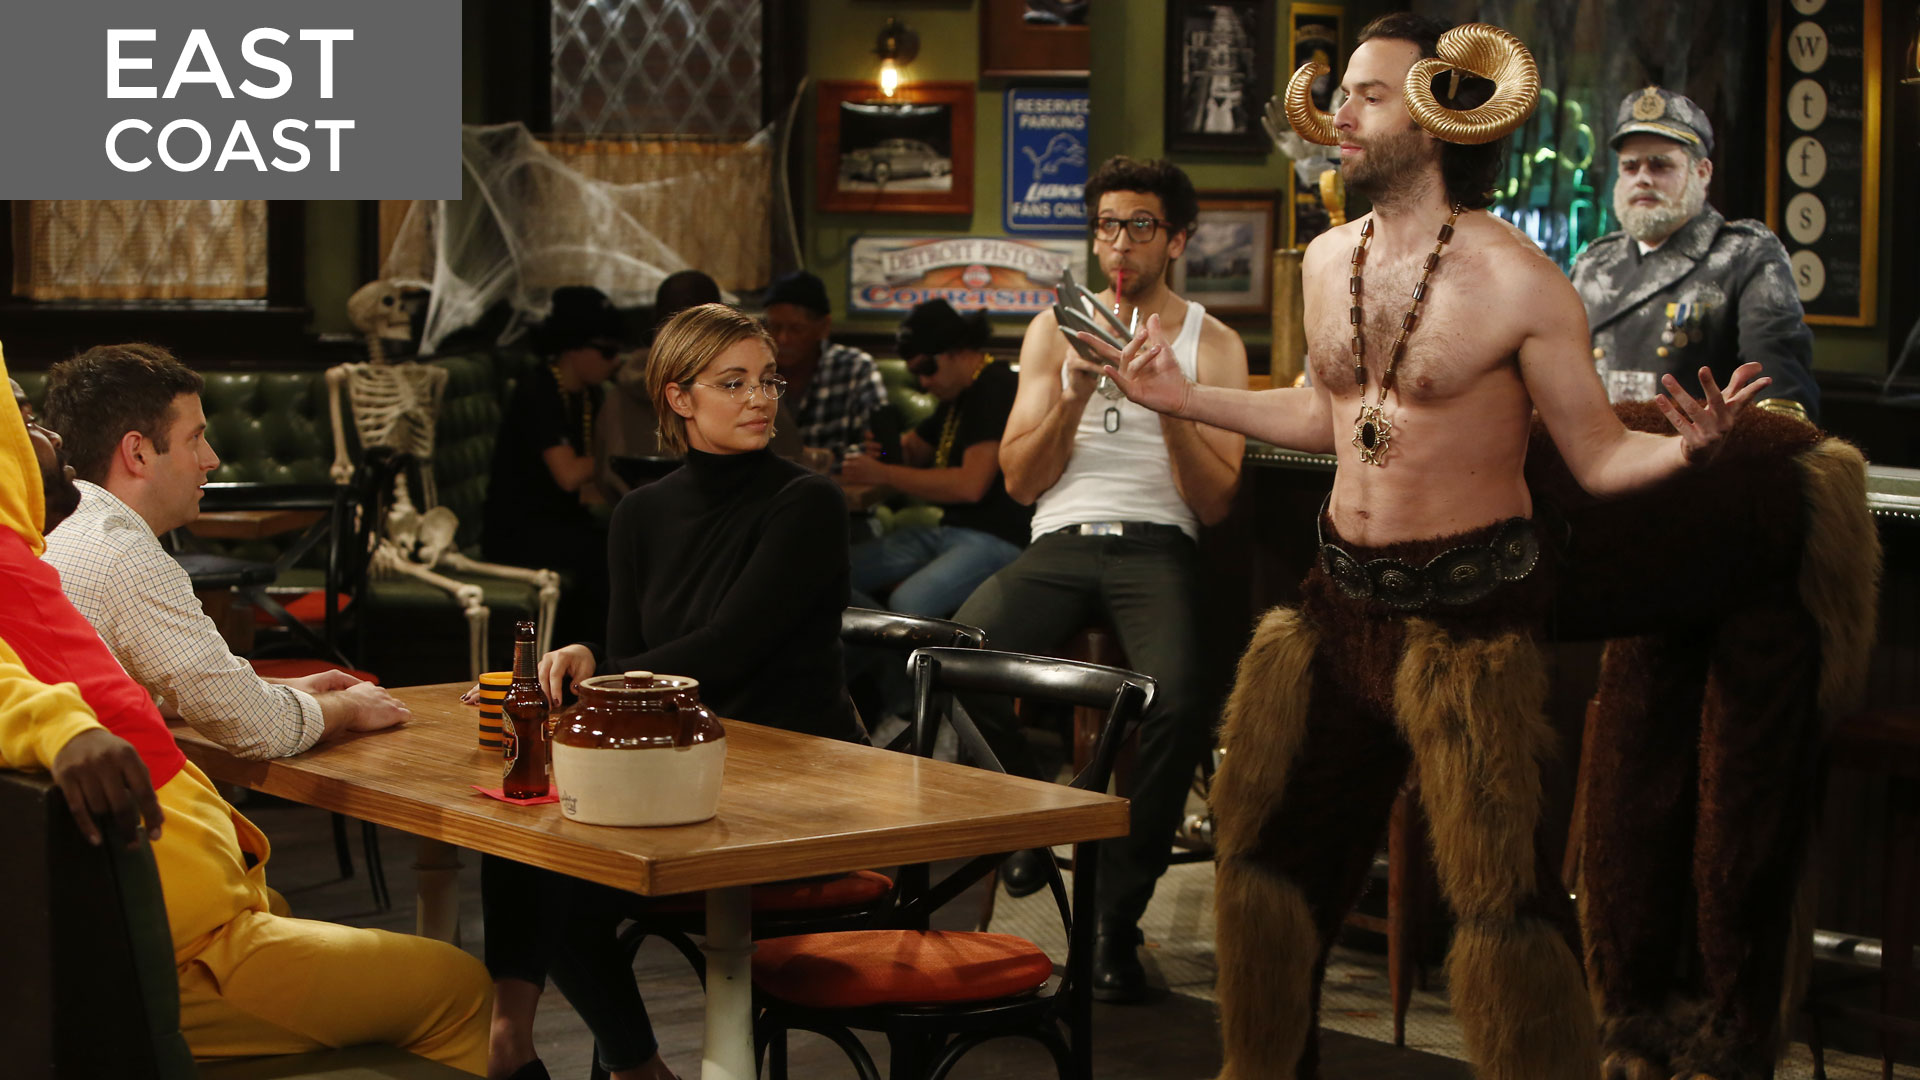 Halloween walks into a bar episodes undateable nbc for Food bar east coast